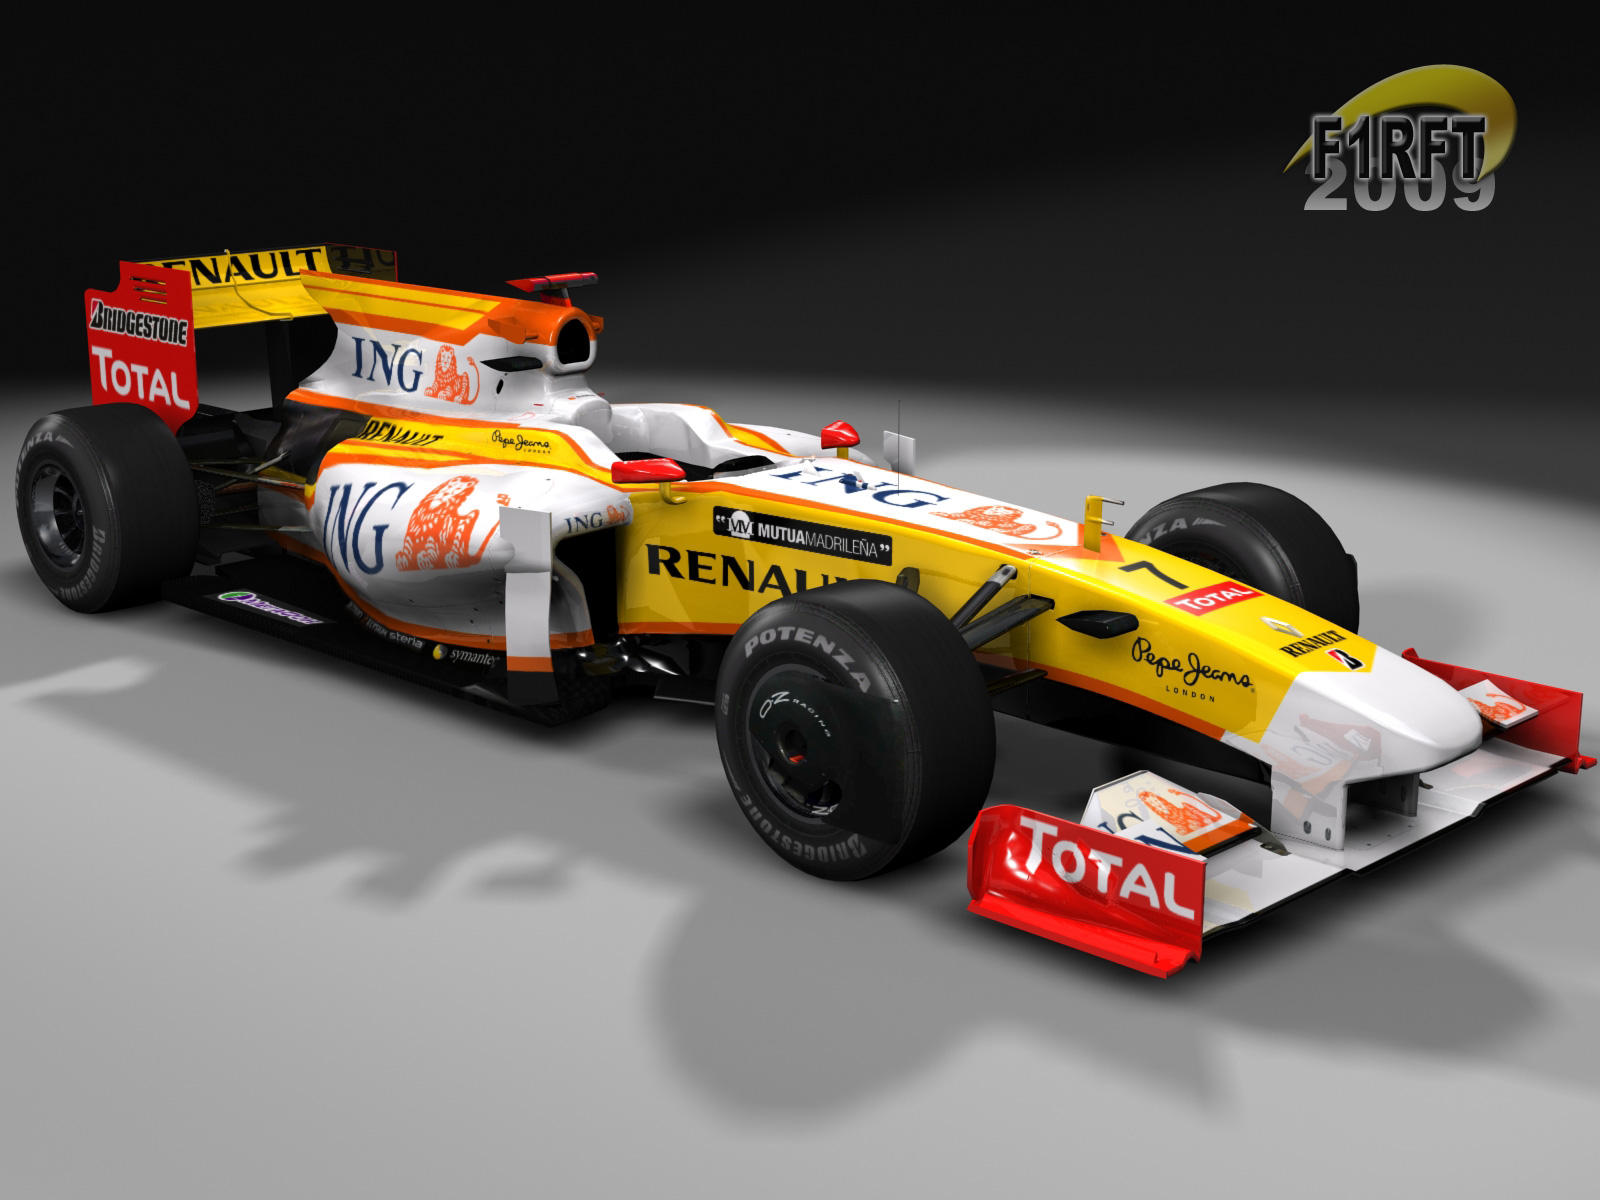 Renault r29 photo - 5